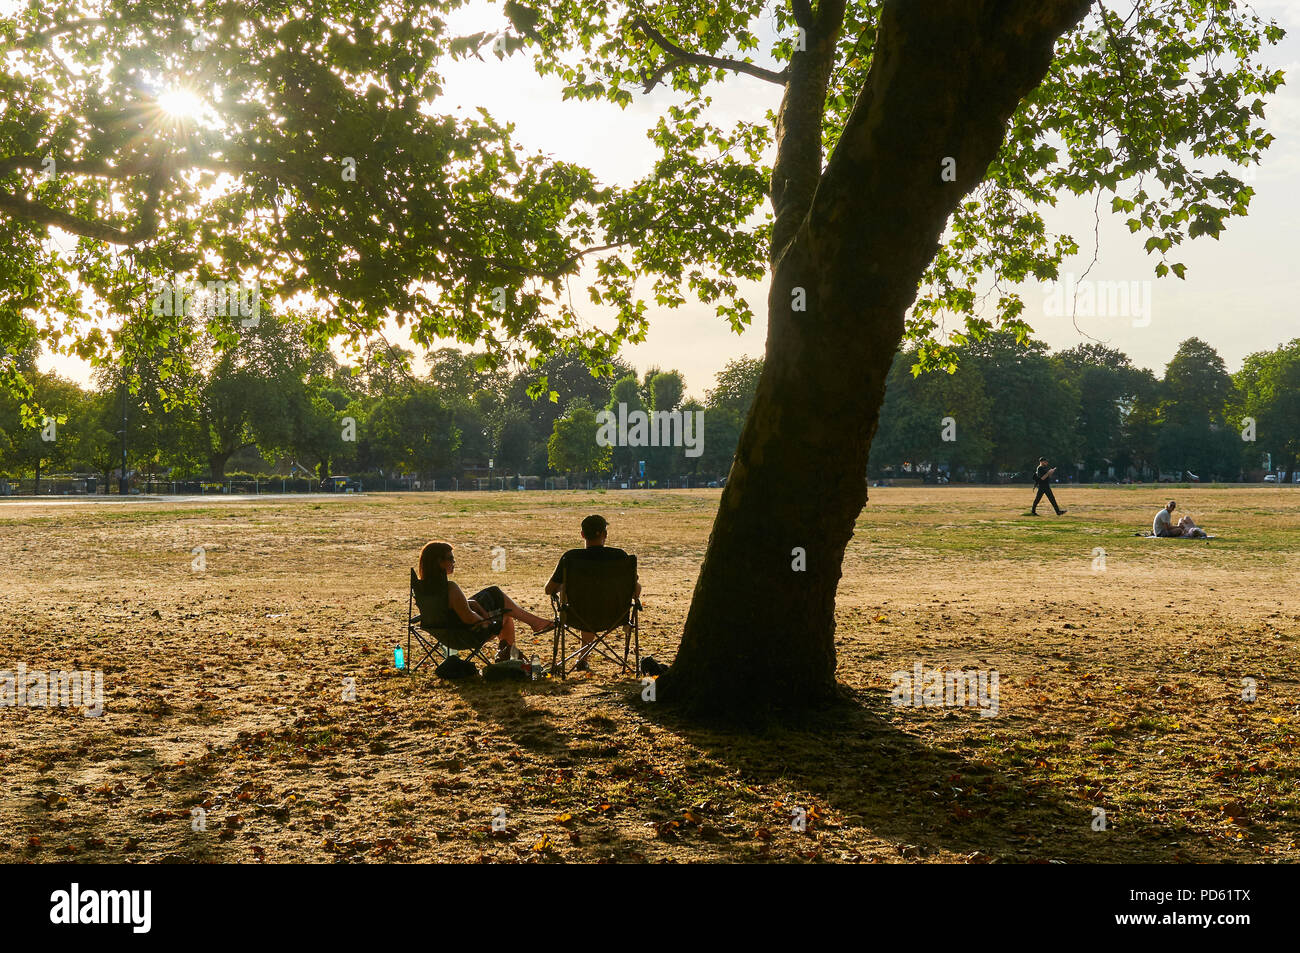 Sunbathers in Victoria Park, East London UK, in August, during the 2018 heatwave. with late afternoon sun and parched grass - Stock Image